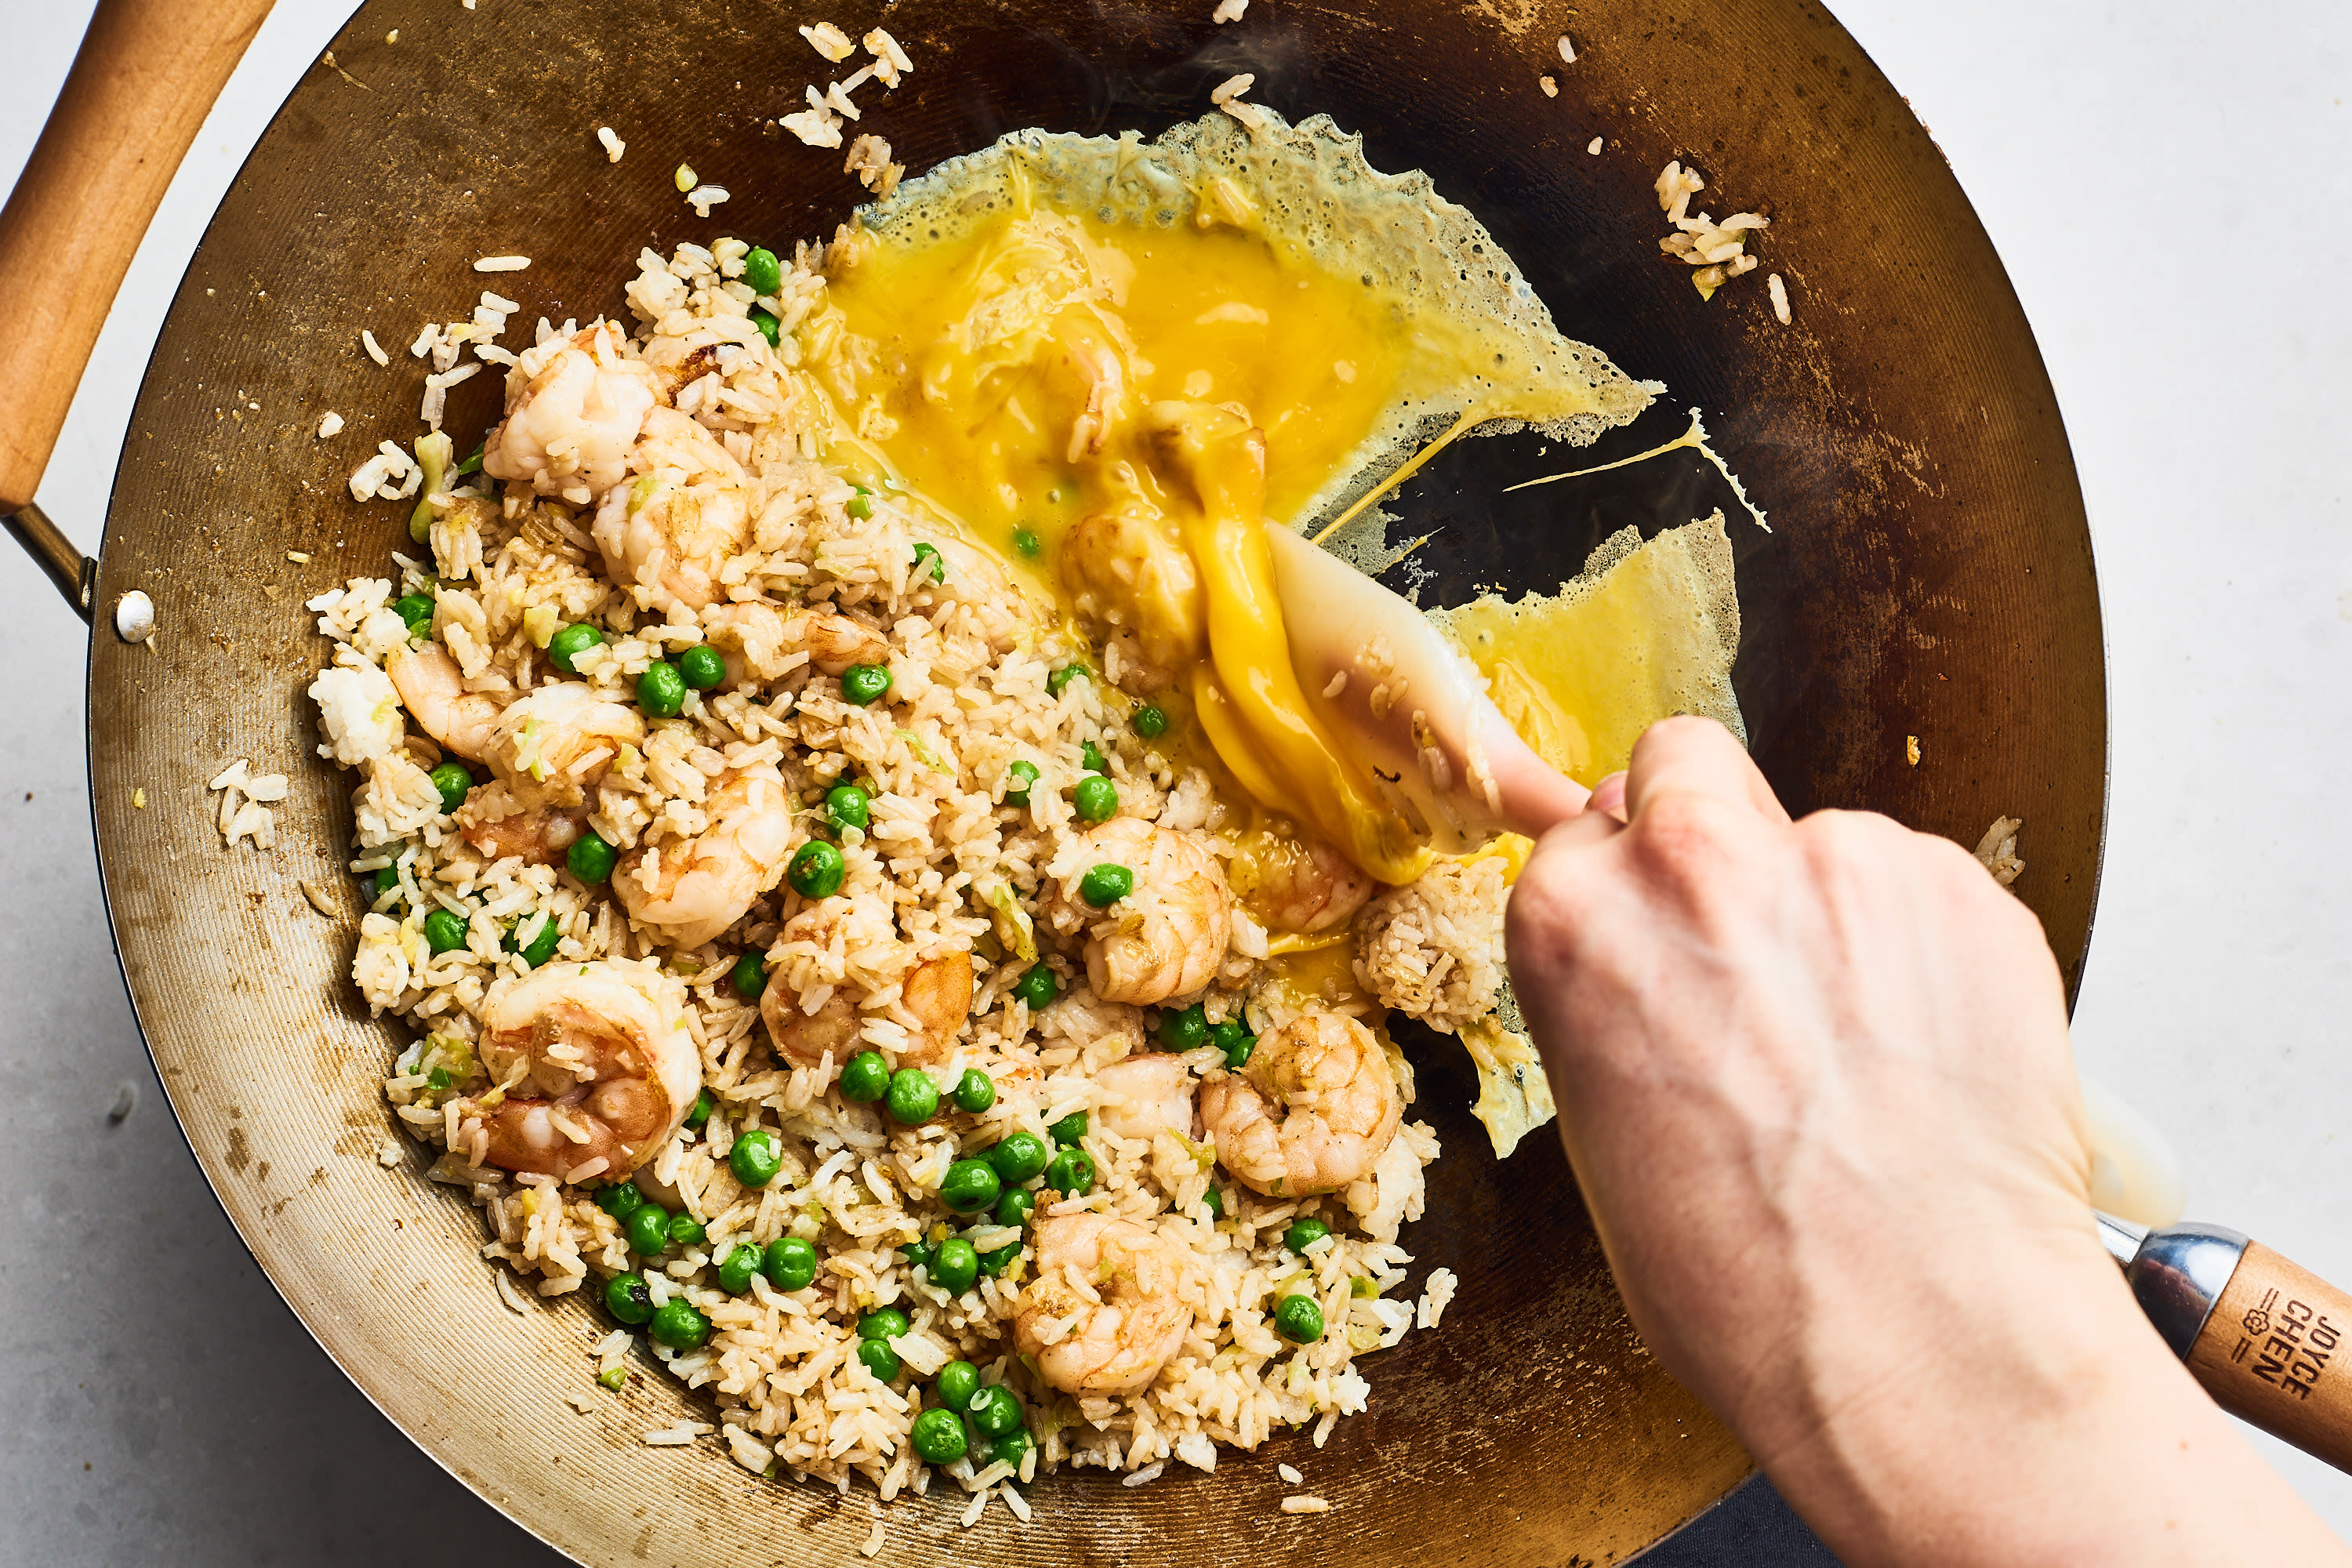 How To Make Easy Shrimp Fried Rice That's Even Better than Takeout